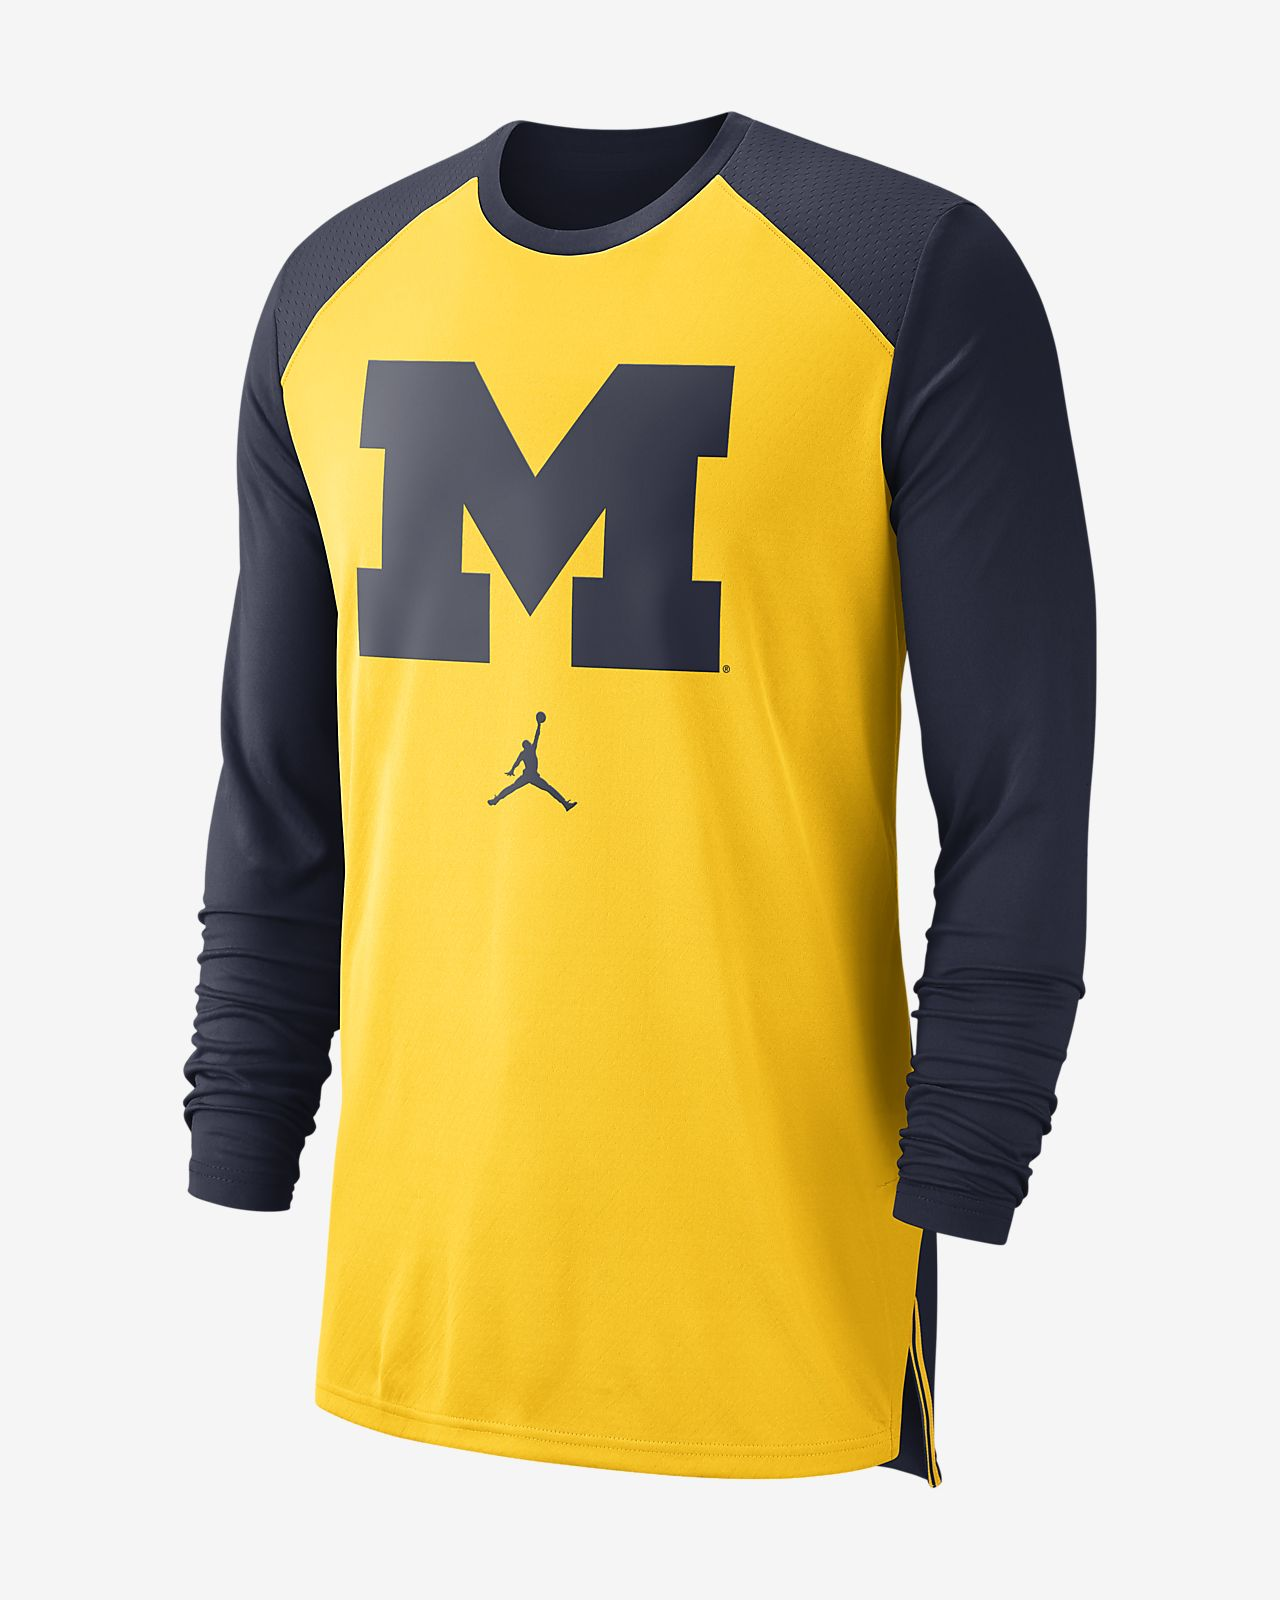 5a942155ab0f47 Jordan College Dri-FIT (Michigan) Men s Long-Sleeve Basketball Top ...